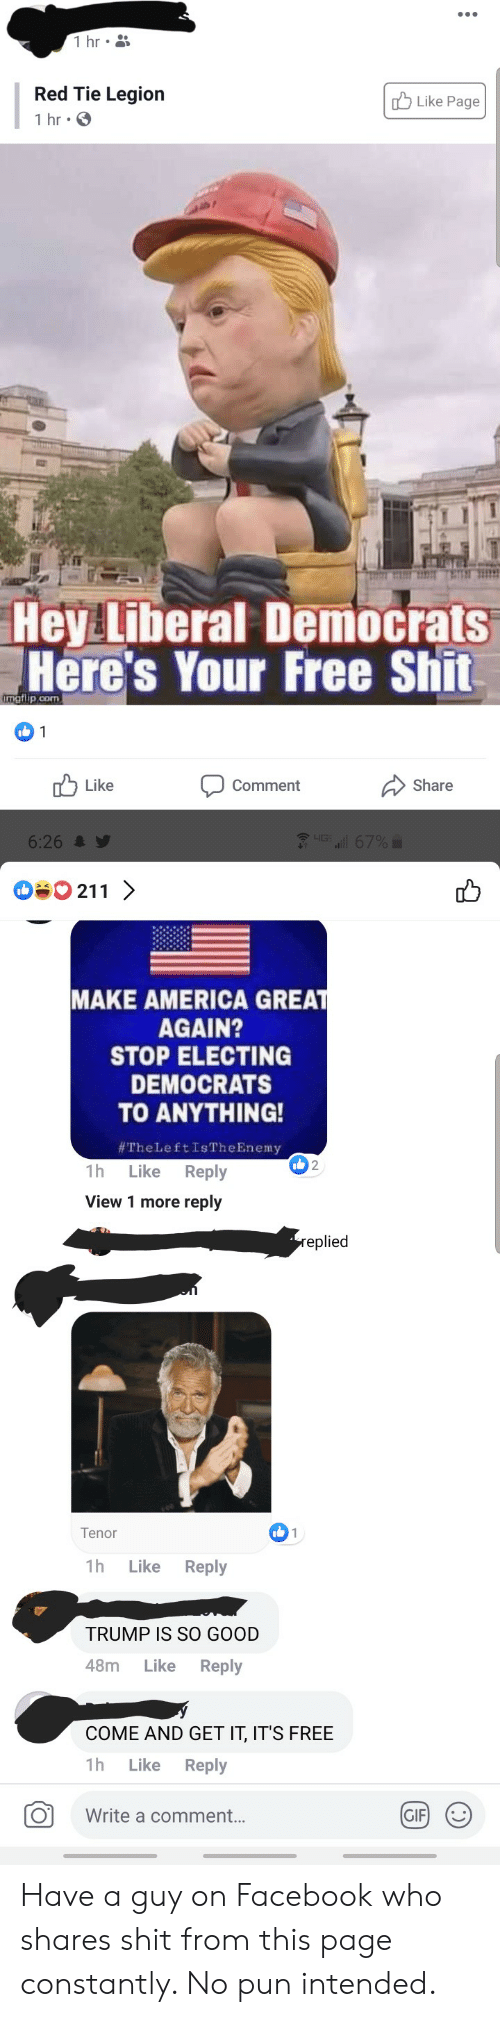 America, Facebook, and Gif: 1 hr  Red Tie Legion  Like Page  1 hr  Hey Liberal Democrats  Here's Your Free Shit  Lmgflip.com  1  Like  Comment  Share  Gll 67%  LIG  6:26  211  MAKE AMERICA GREAT  AGAIN?  STOP ELECTING  DEMOCRATS  TO ANYTHING!  #TheLeftIs The Enemy  Like Reply  2  1h  View 1 more reply  replied  I1  Tenor  1h  Reply  Like  TRUMP IS SO GOOD  48m  Like  Reply  COME AND GET IT, IT'S FREE  1h  Reply  Like  GIF  Write a comment... Have a guy on Facebook who shares shit from this page constantly. No pun intended.